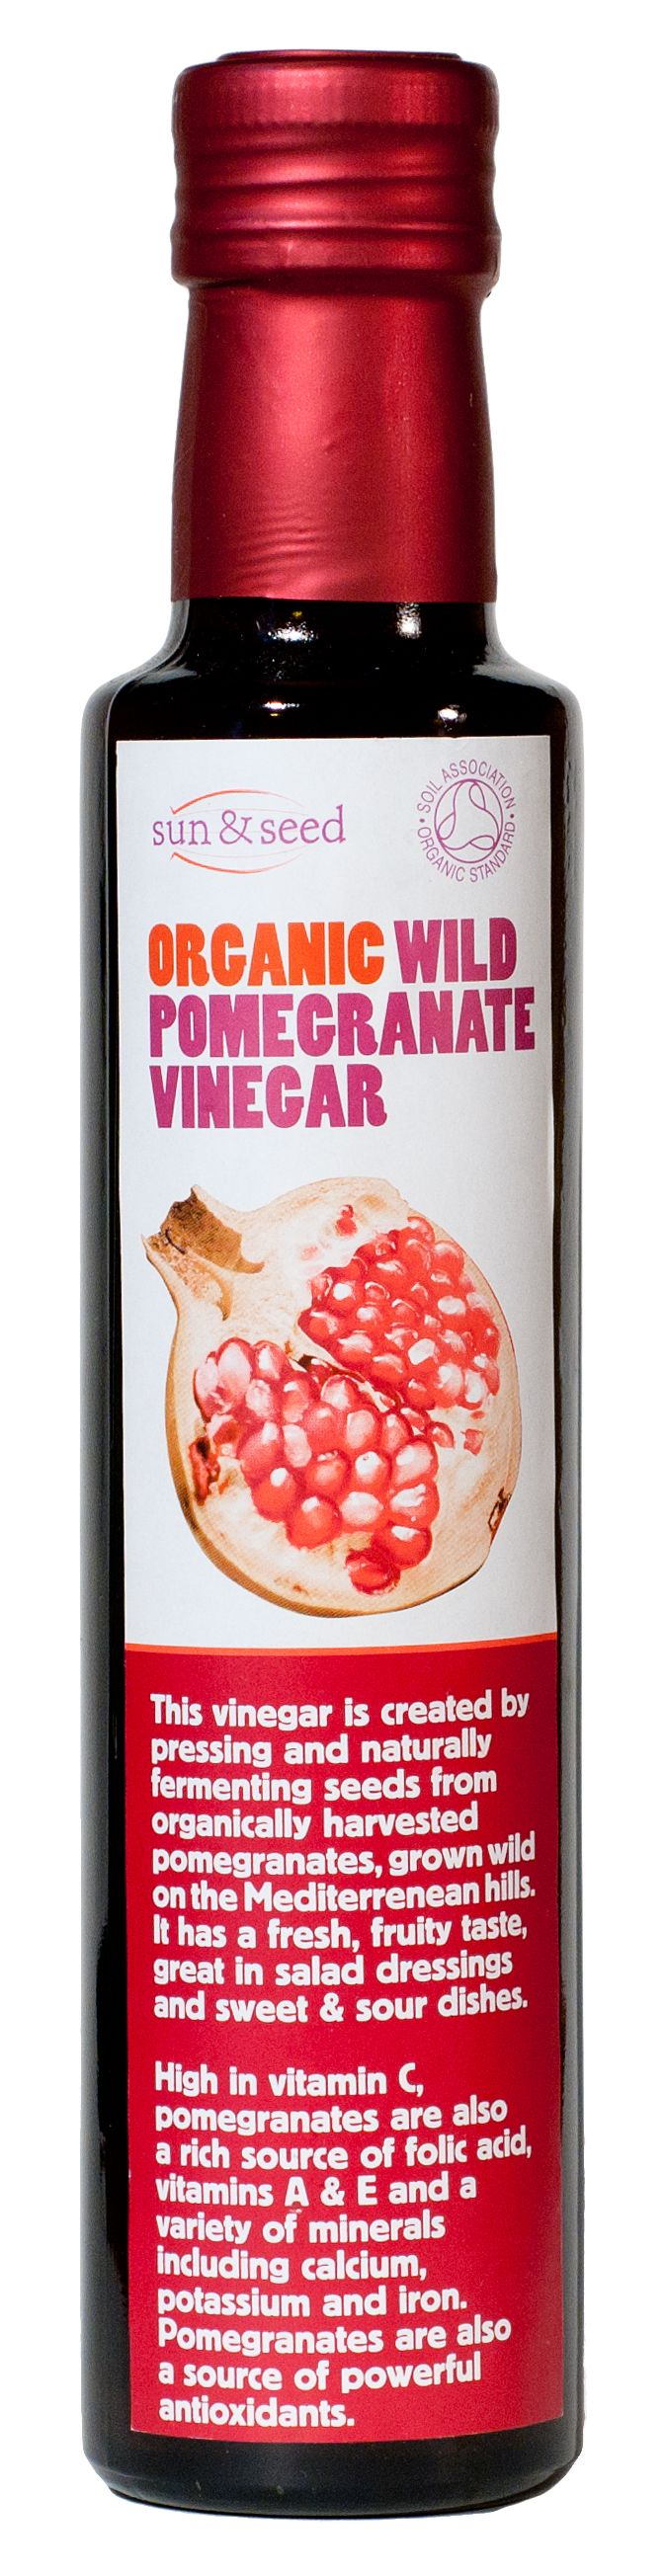 Sun & Seed Organic Wild Pomegranate Vinegar 250ml